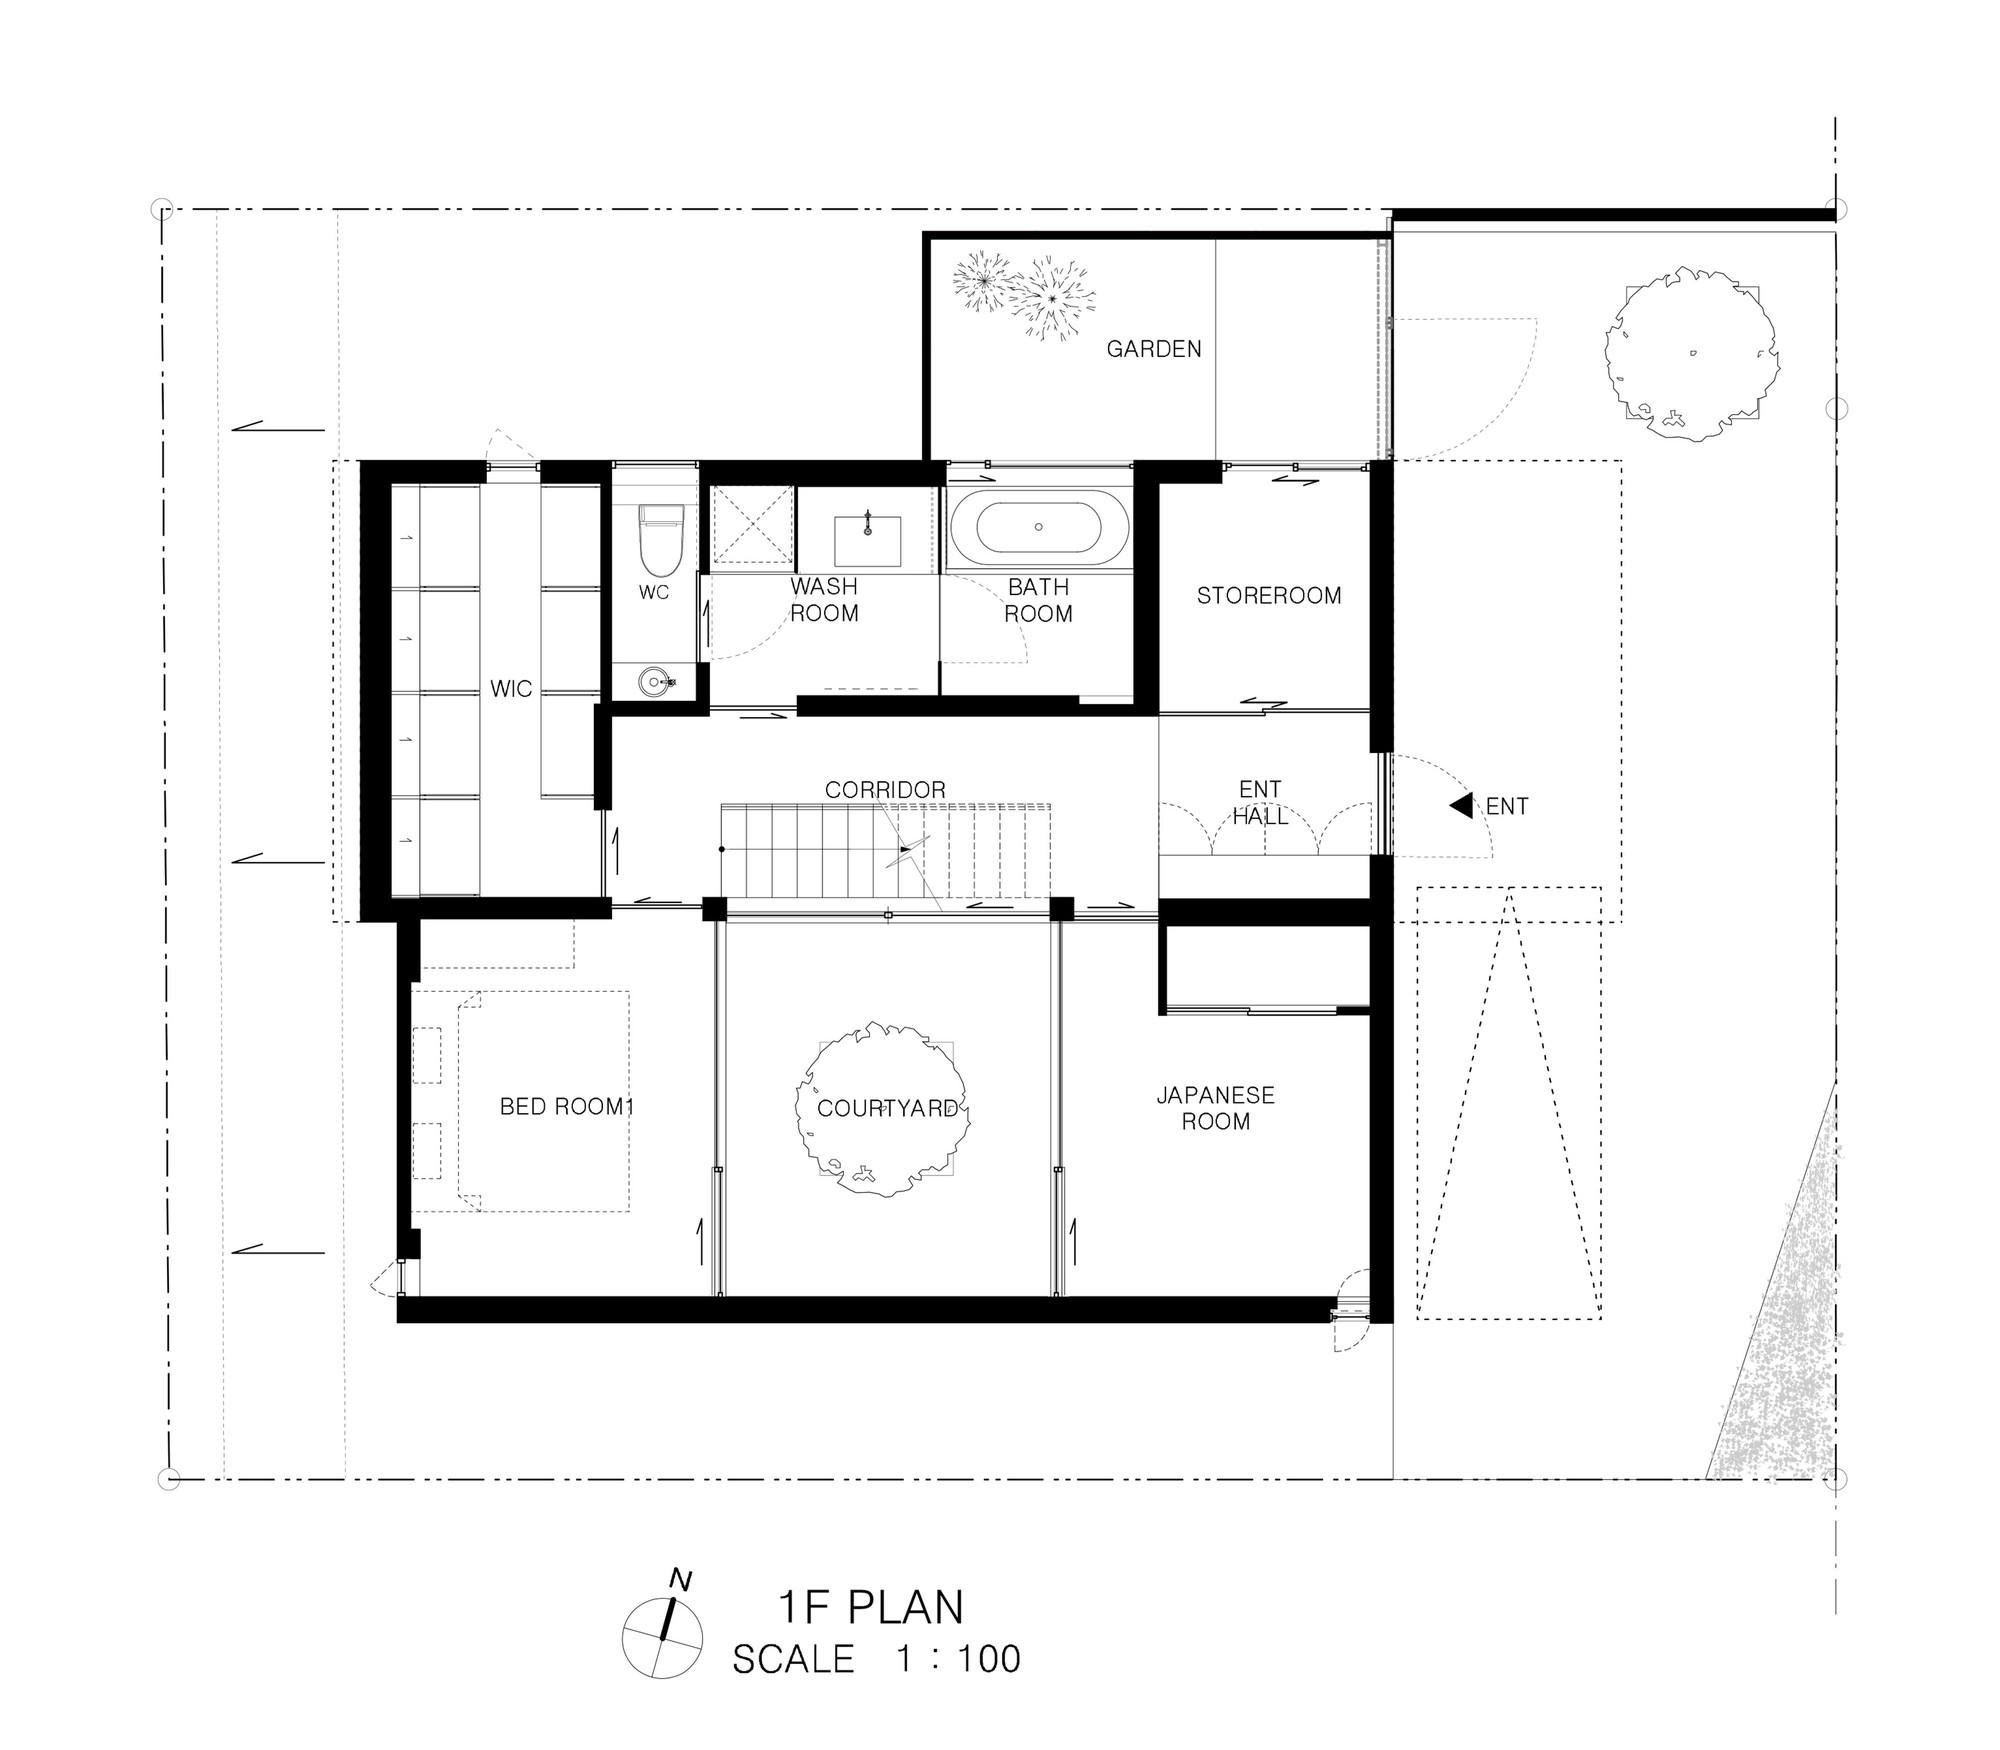 Patio house apollo architects associates for Patio home plans